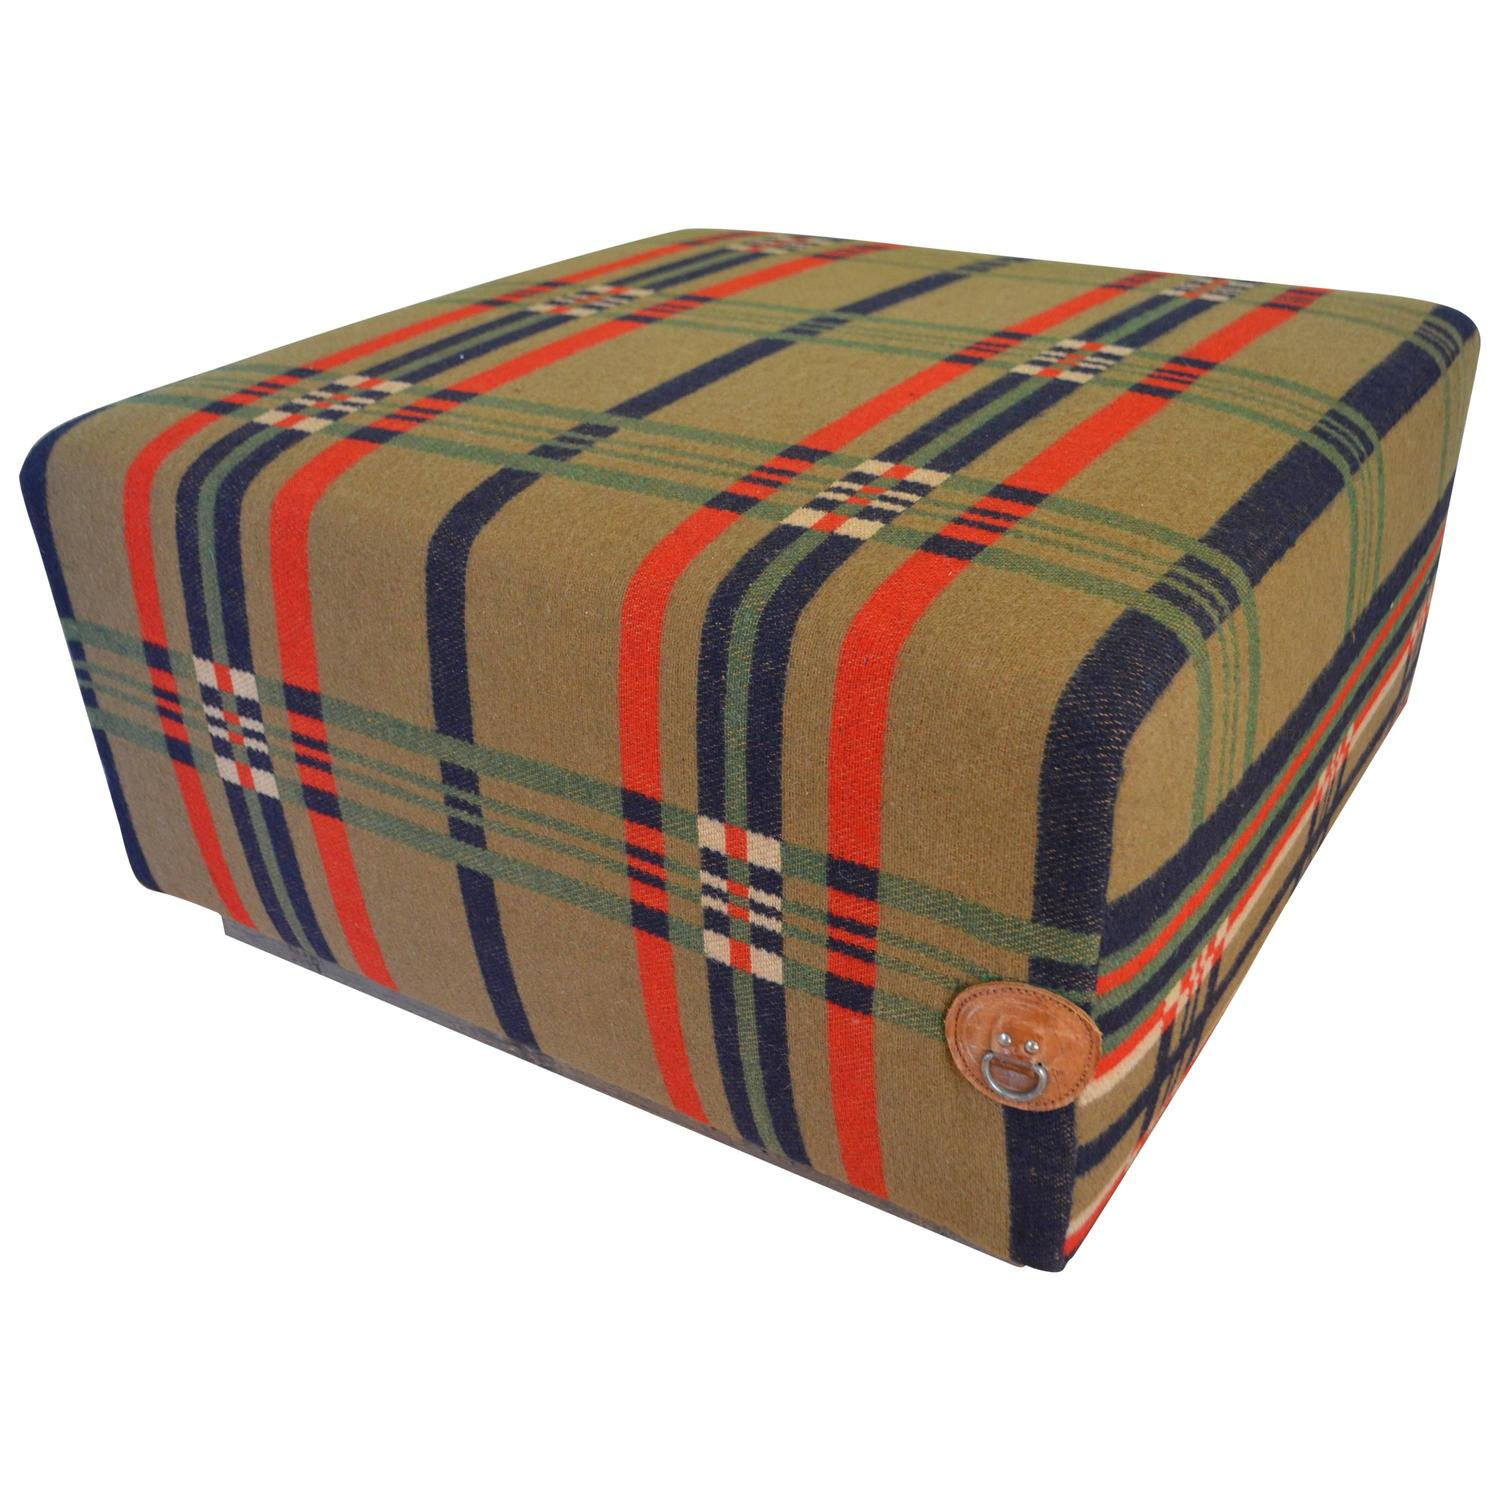 Ottoman Uphlostered in Vintage Horse Blanket on Rustic Barn Wood